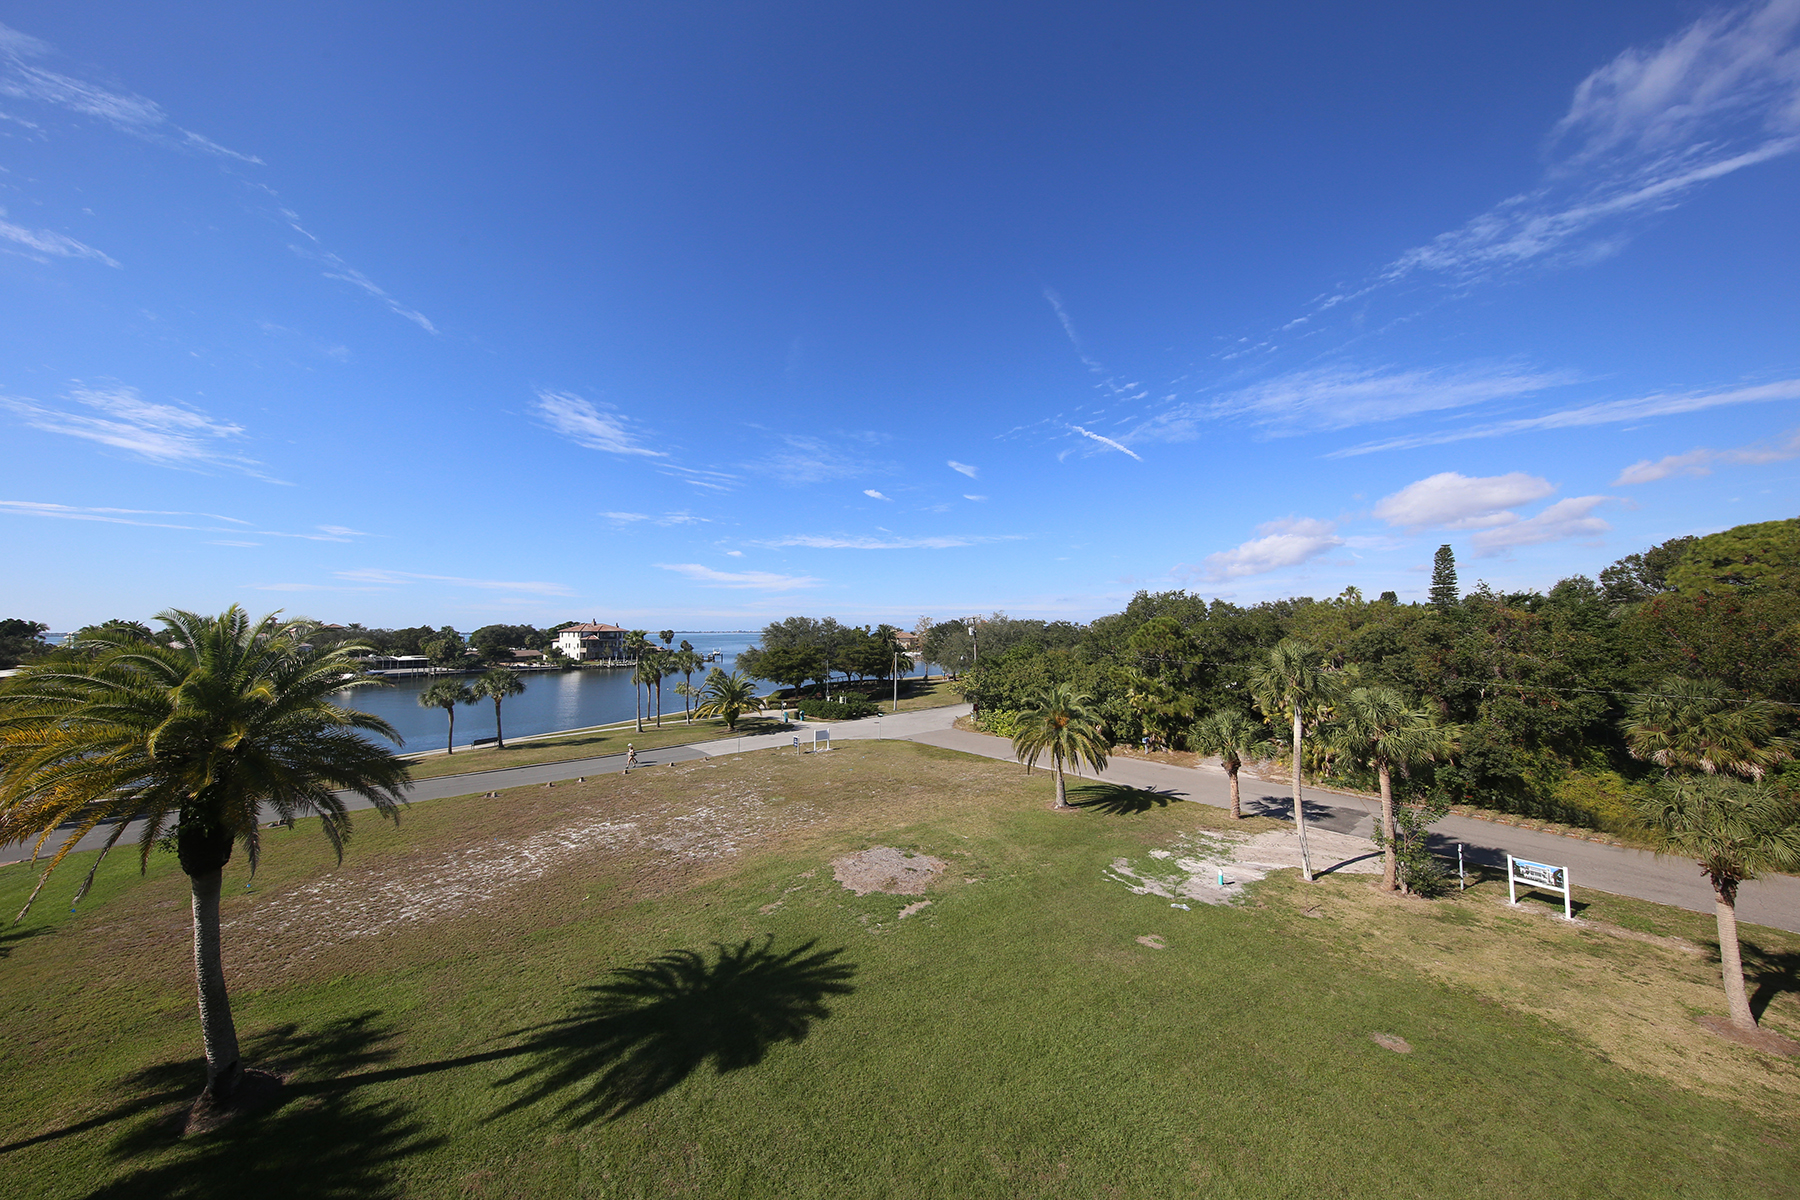 Land for Sale at SAPPHIRE SHORES 418 Acacia Dr 1, Sarasota, Florida, 34234 United States